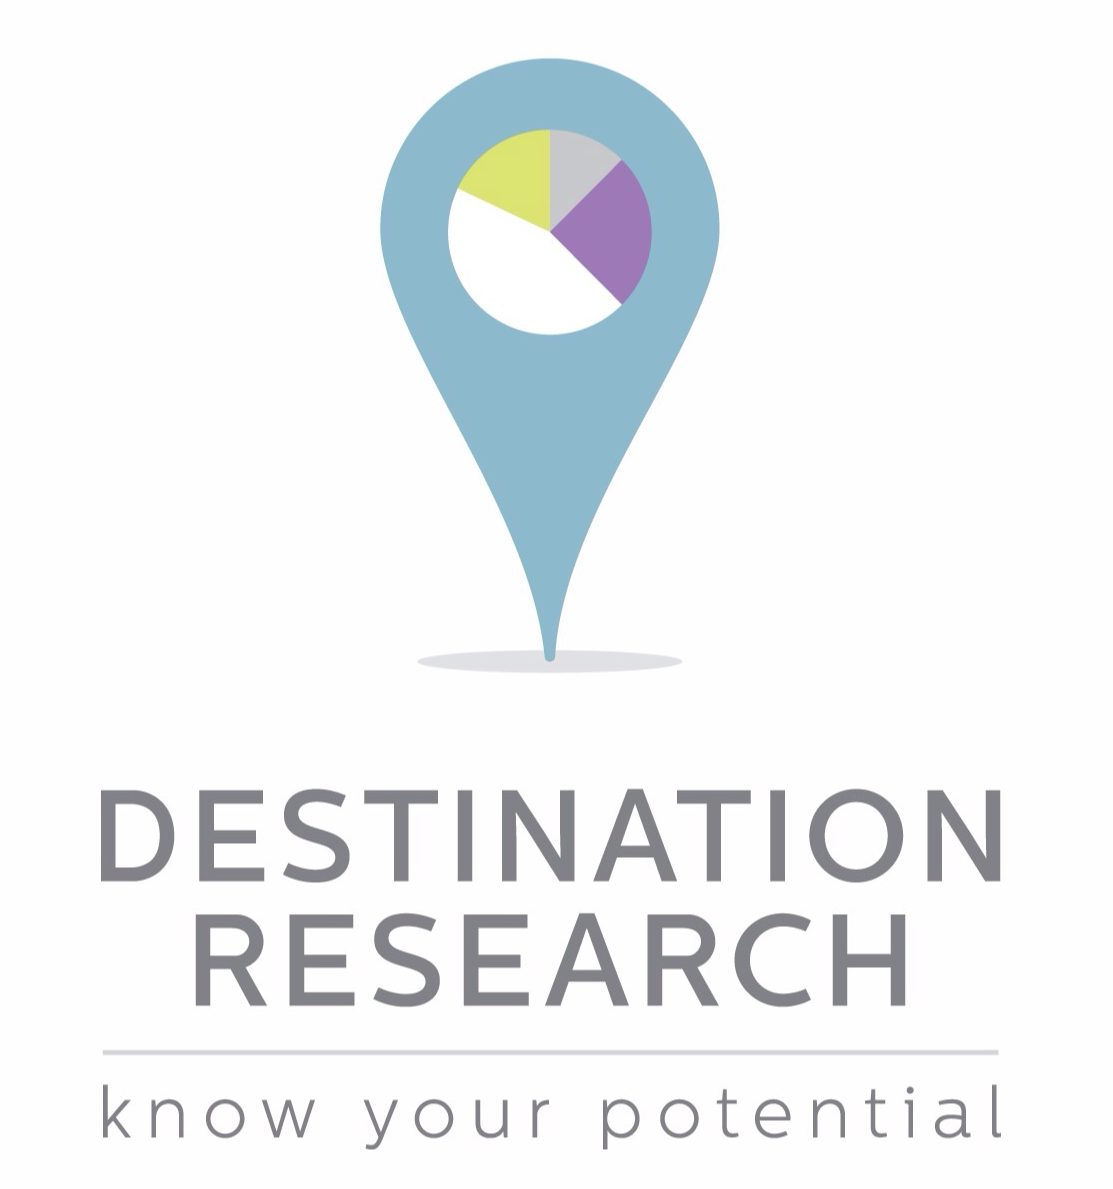 DESTINATION RESEARCH